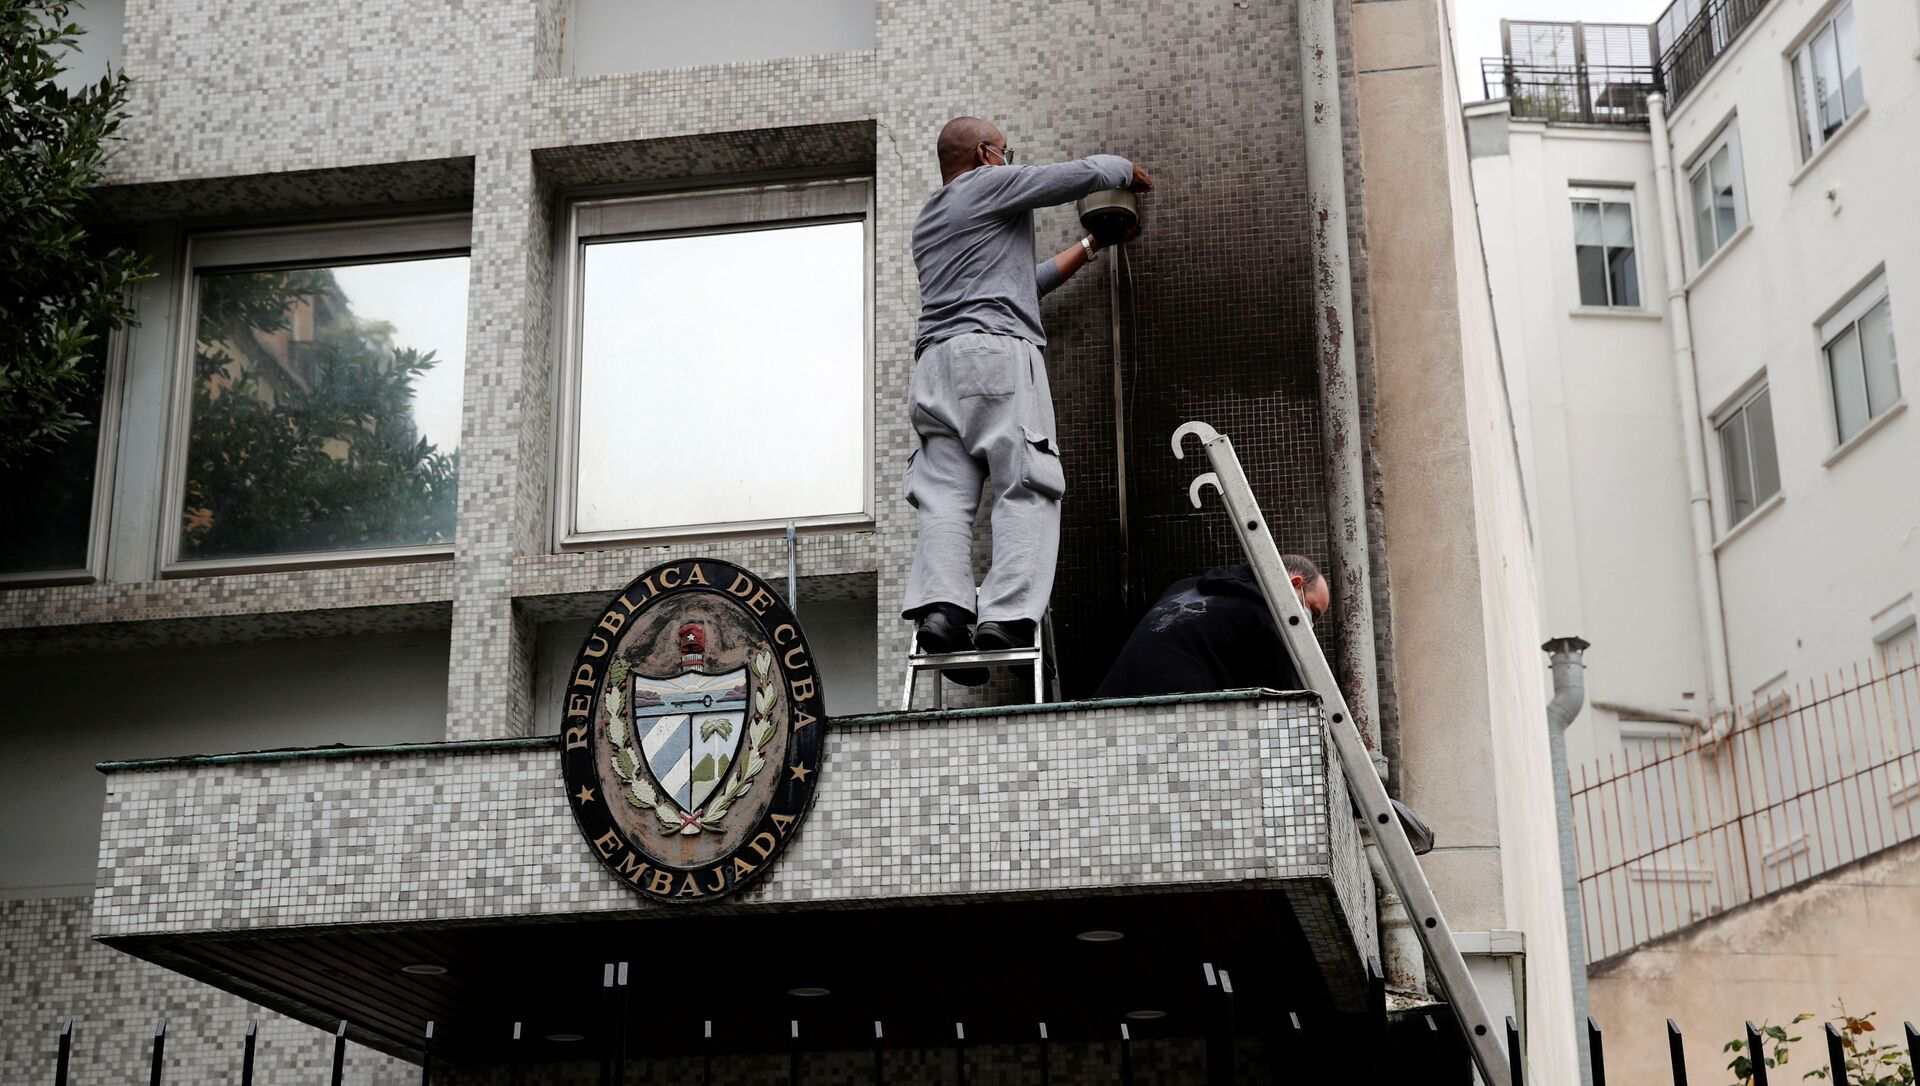 Experts inspect the damage at the Cuban embassy following an overnight petrol bomb attack on its building, in Paris, France July 27, 2021.  - Sputnik International, 1920, 27.07.2021